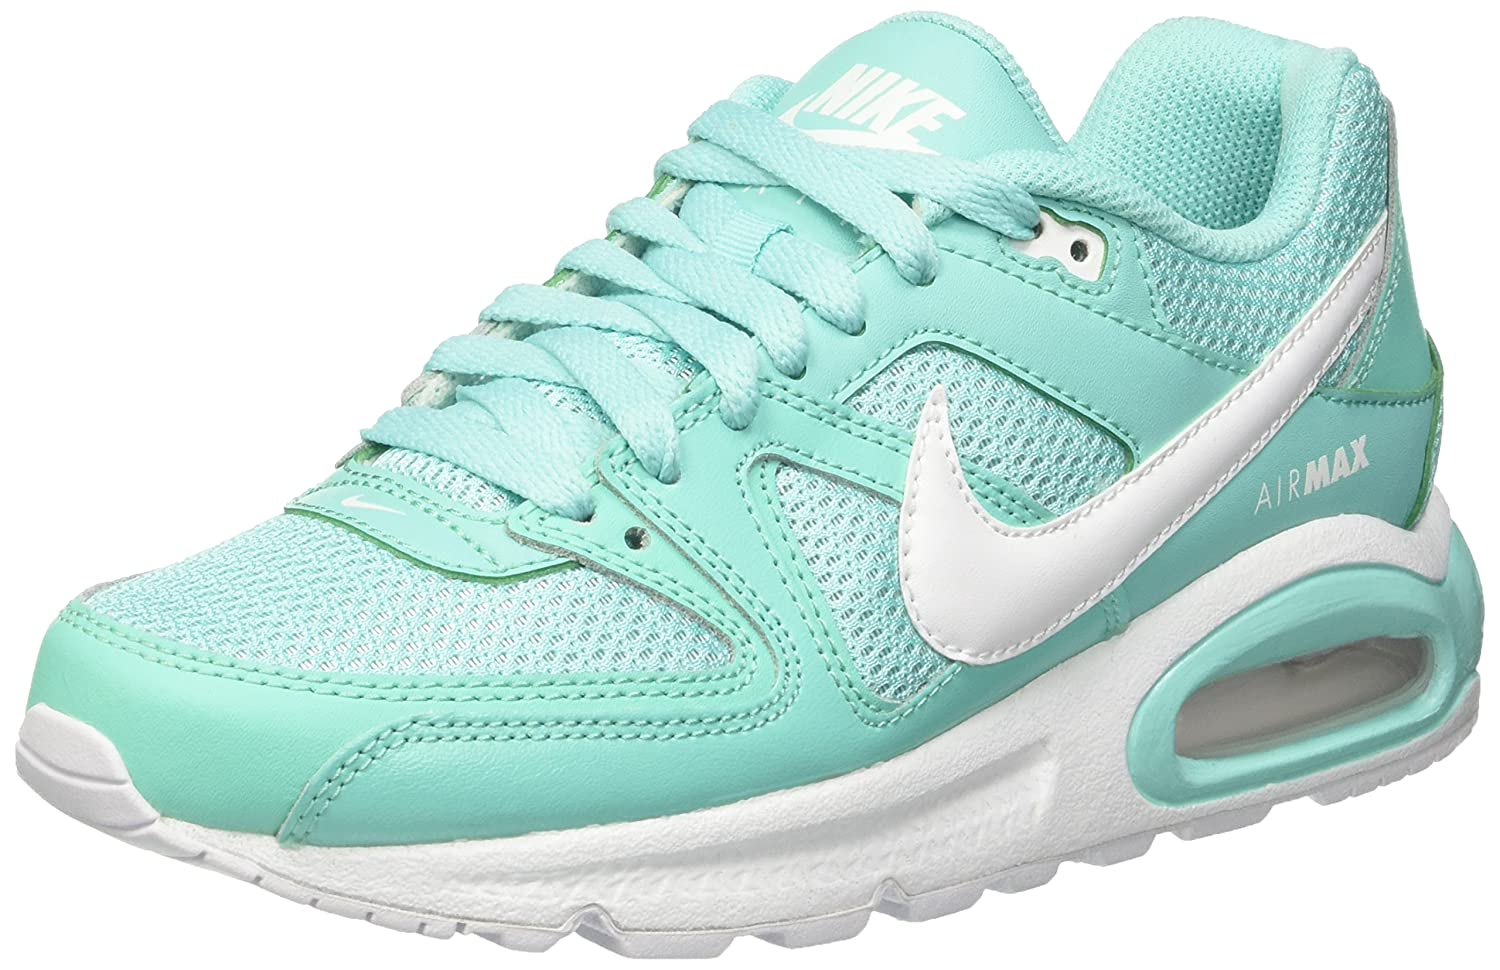 NIKE Air Air NIKE Max ComHommesd GS , Chaussures de Gymnastique Fille, Bianco ddfcf0